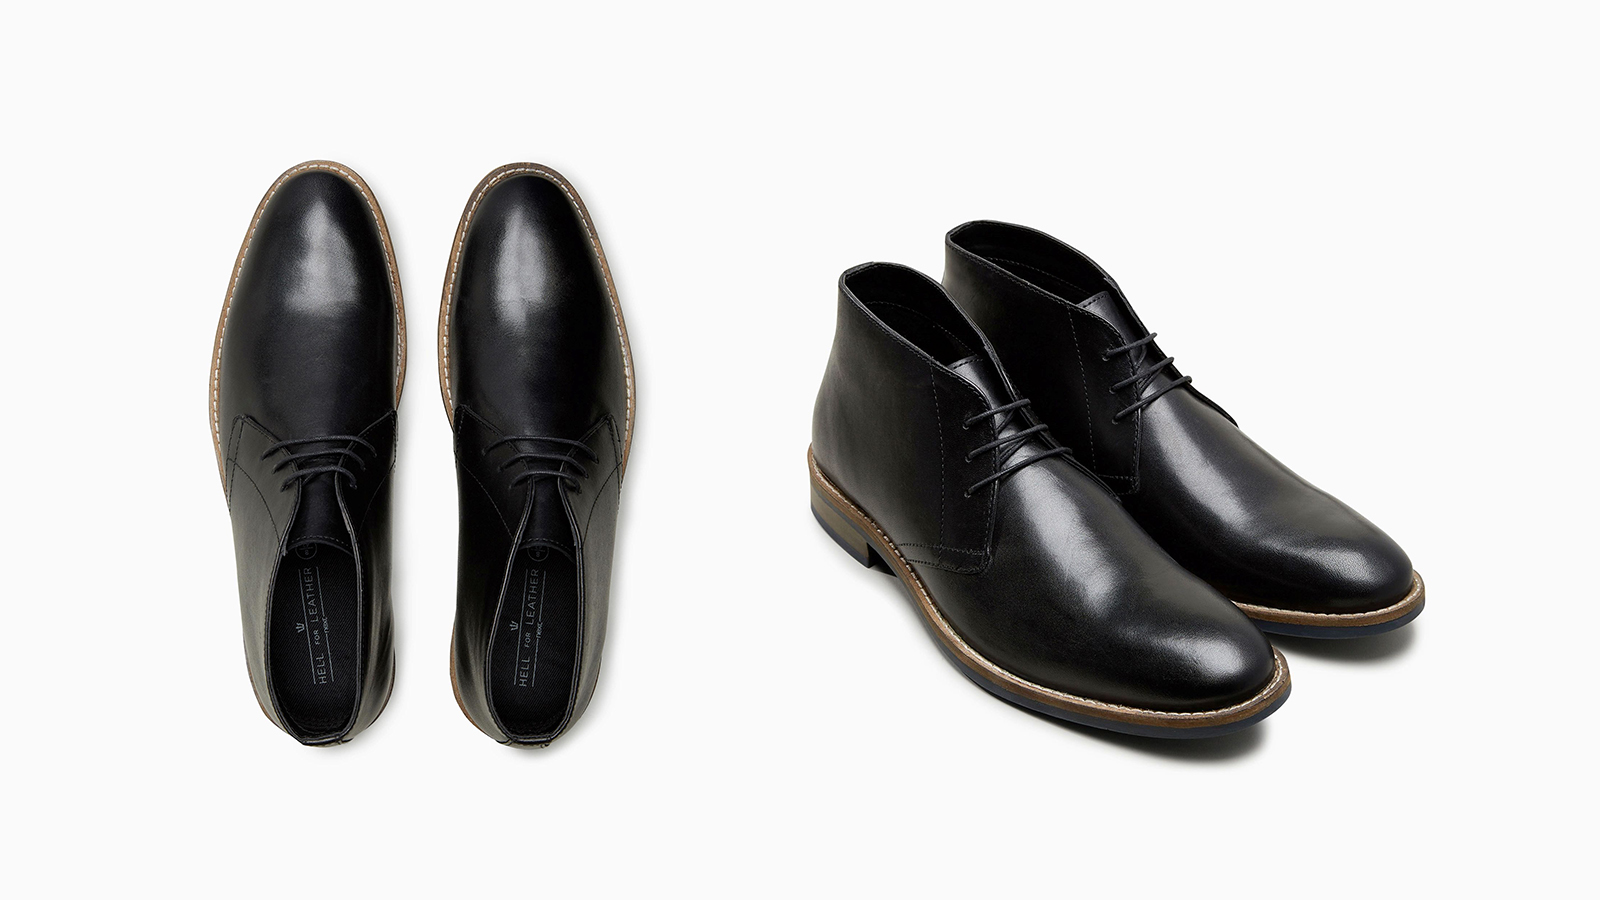 The boots to wear for winter - Chukka boots